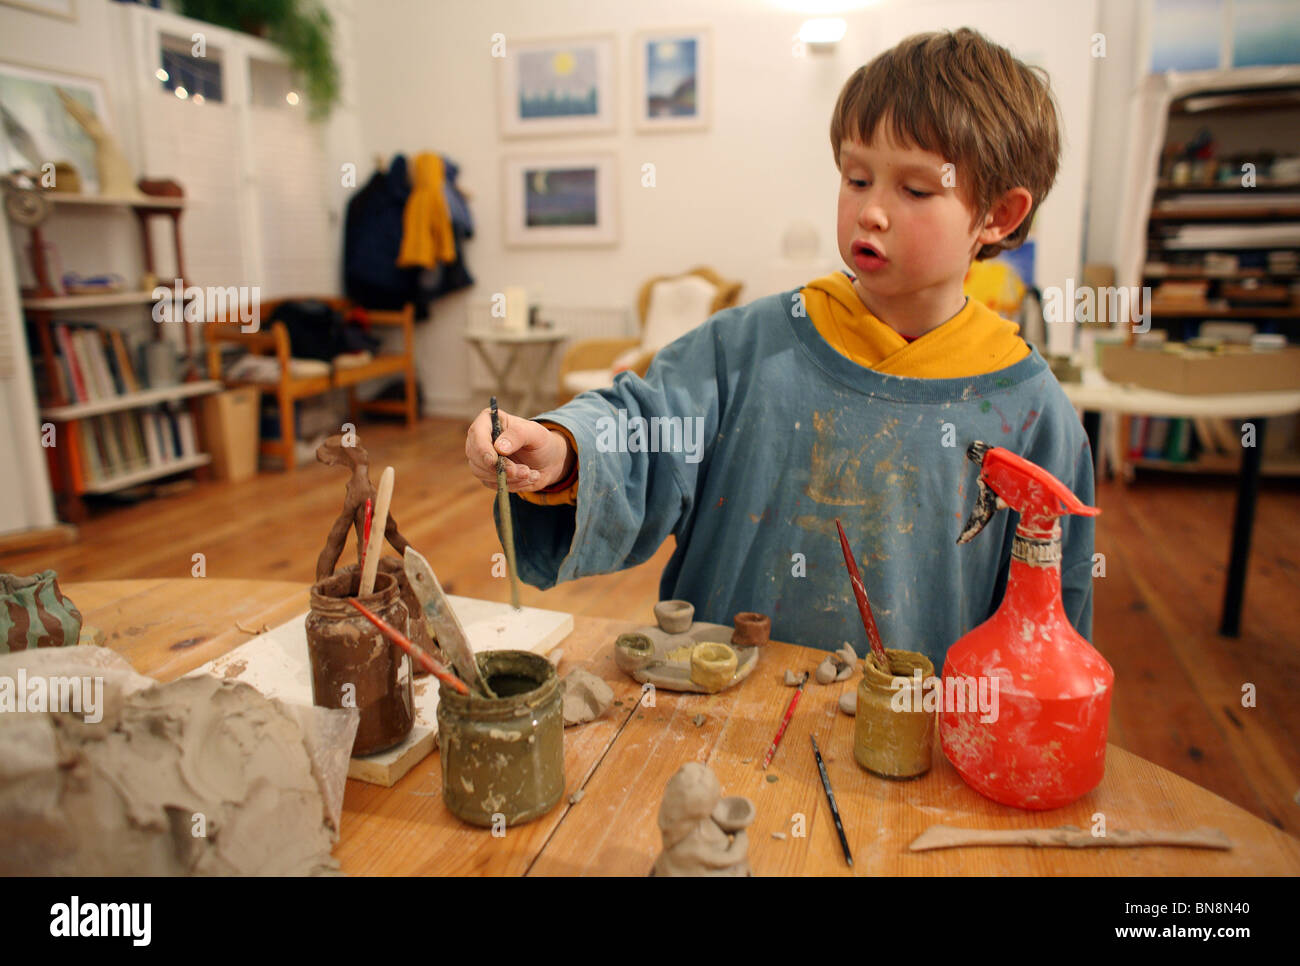 Boy making pottery - Stock Image